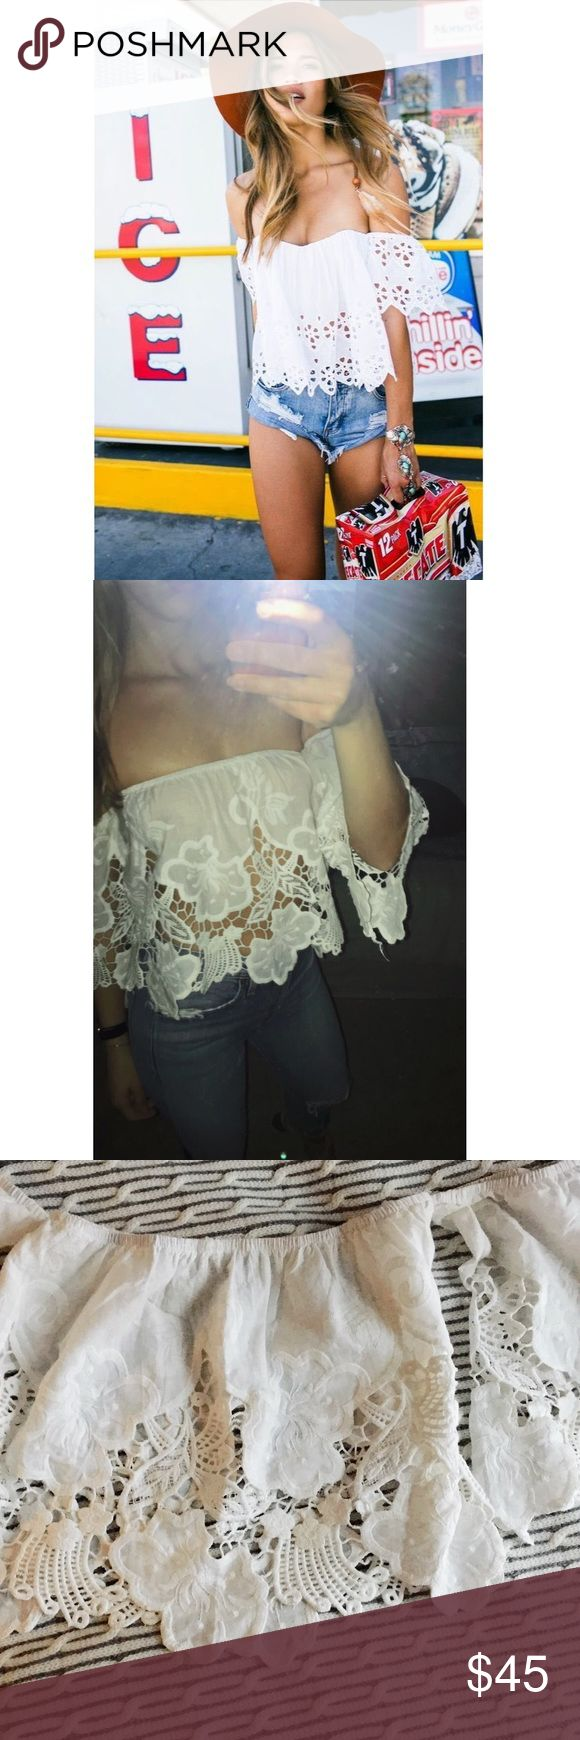 Runway Scout White lace off shoulder top Small Gorgeous white off the shoulder top with lacing detail throughout. Semi-sheer.  Purchased on Runway Scout (Australian brand) sold out online.  Fits Small true to size Reminds me of For Love & Lemons Runway Scout Tops